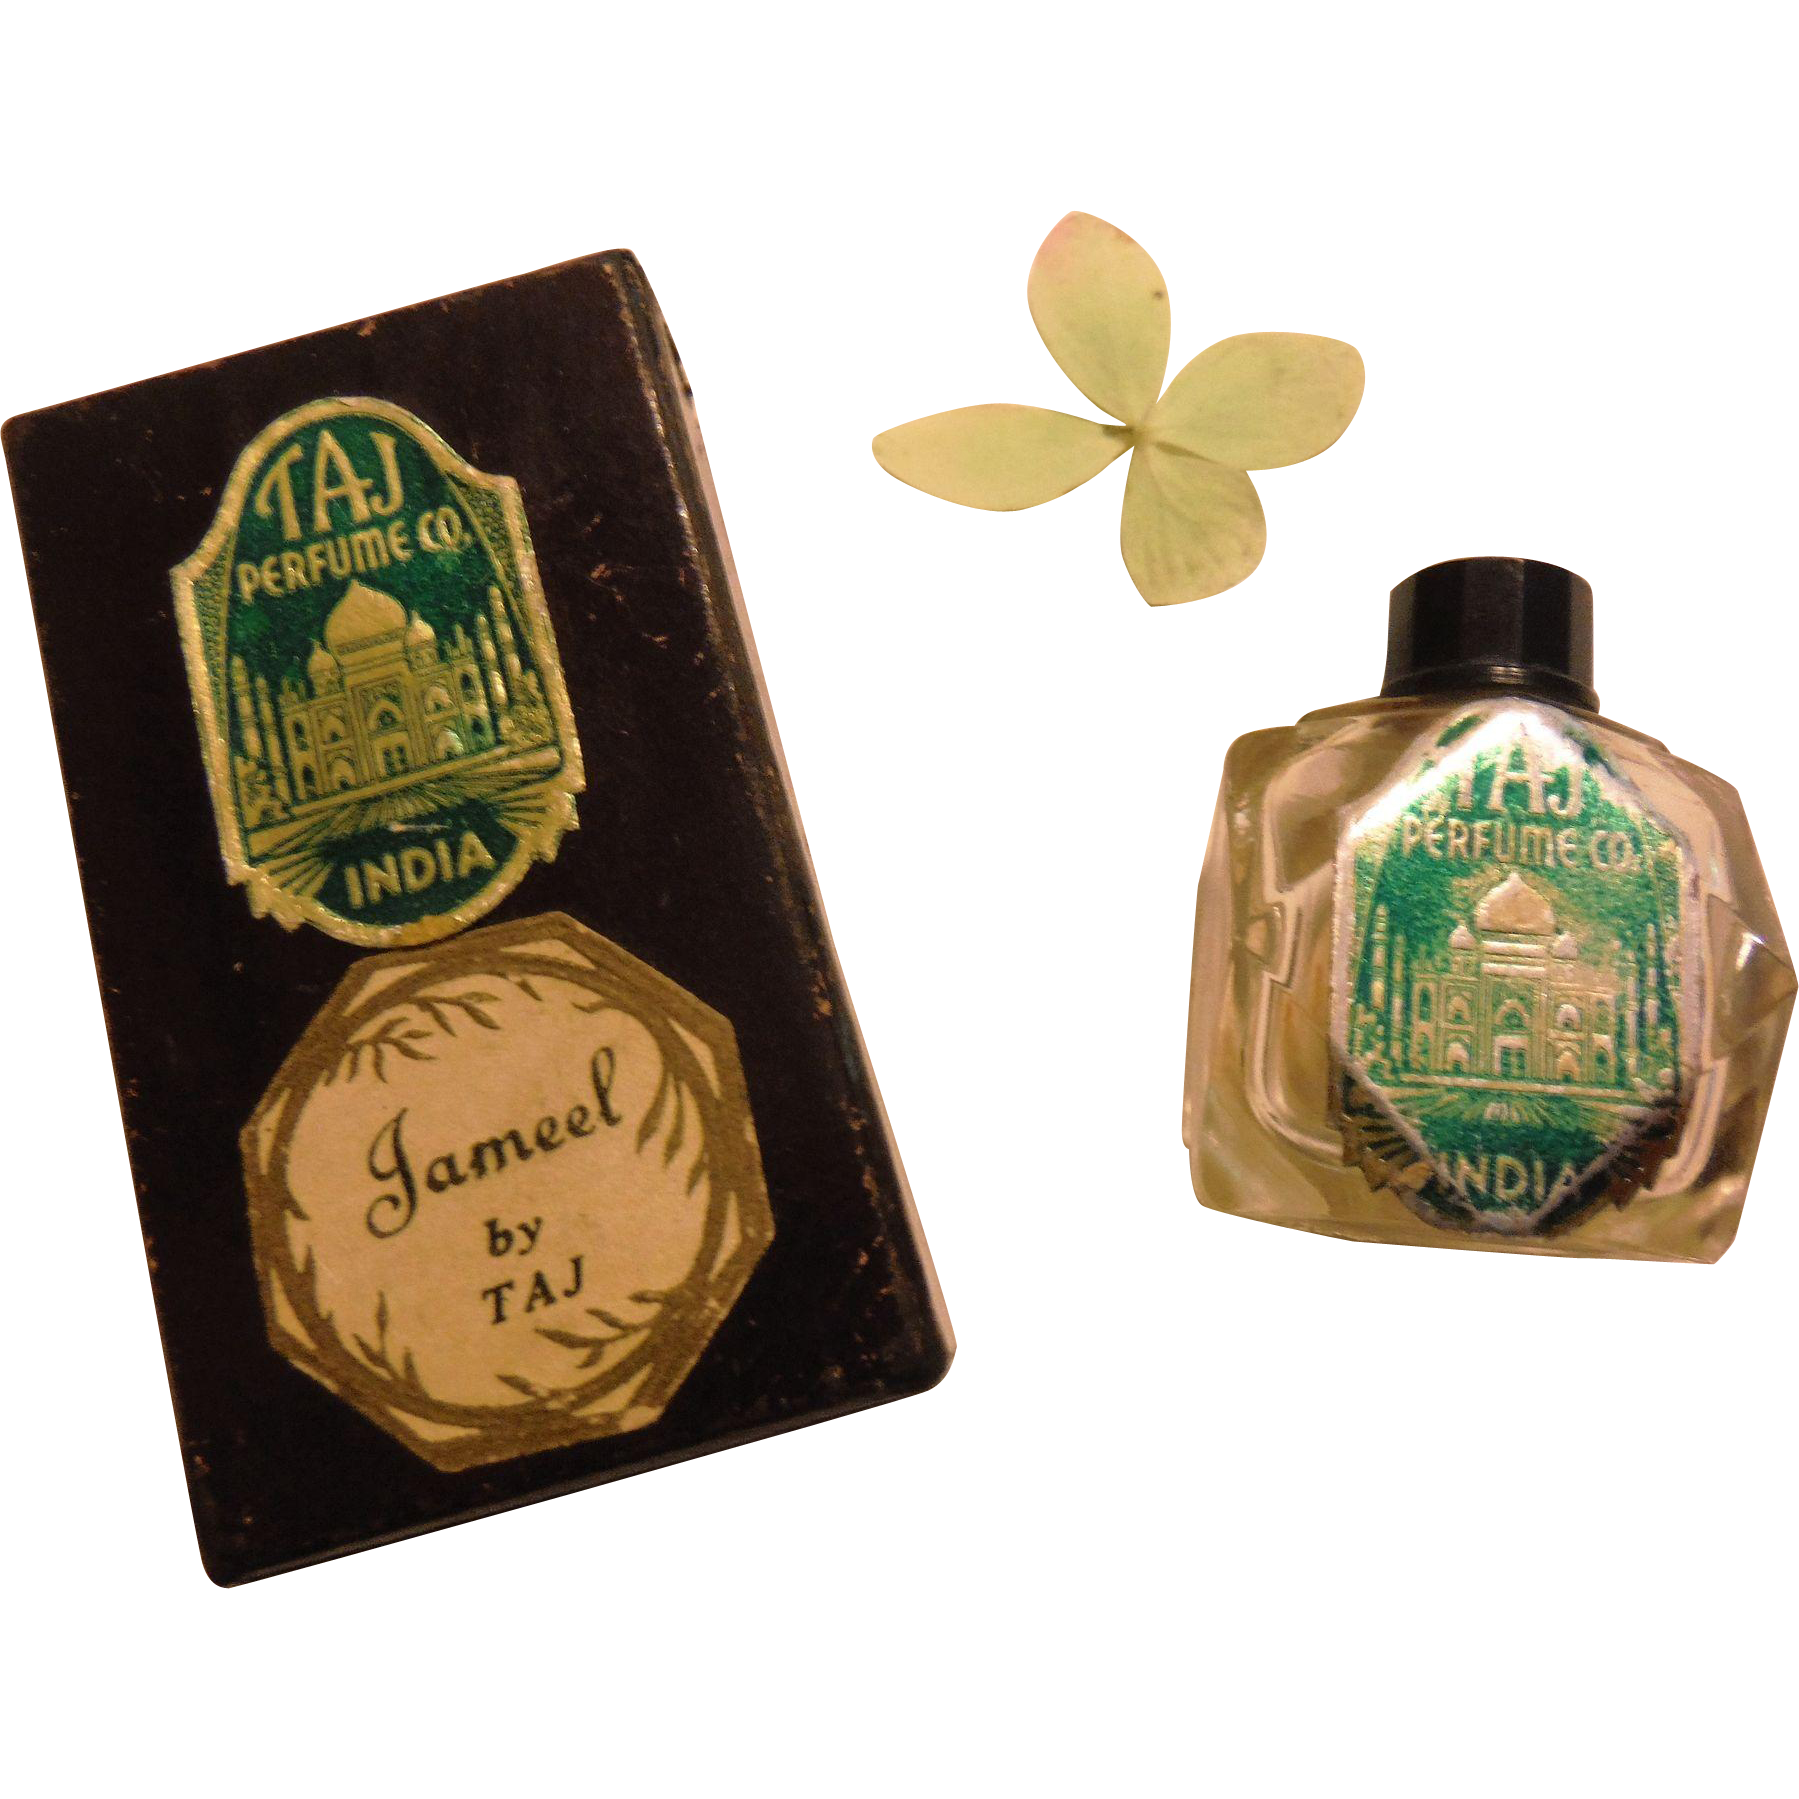 Art Deco Exotic Flapper Jameel by Taj Mini Perfume Scent Fragrance Bottle in Original Box 1930s India Vintage Taj Mahal Miniature